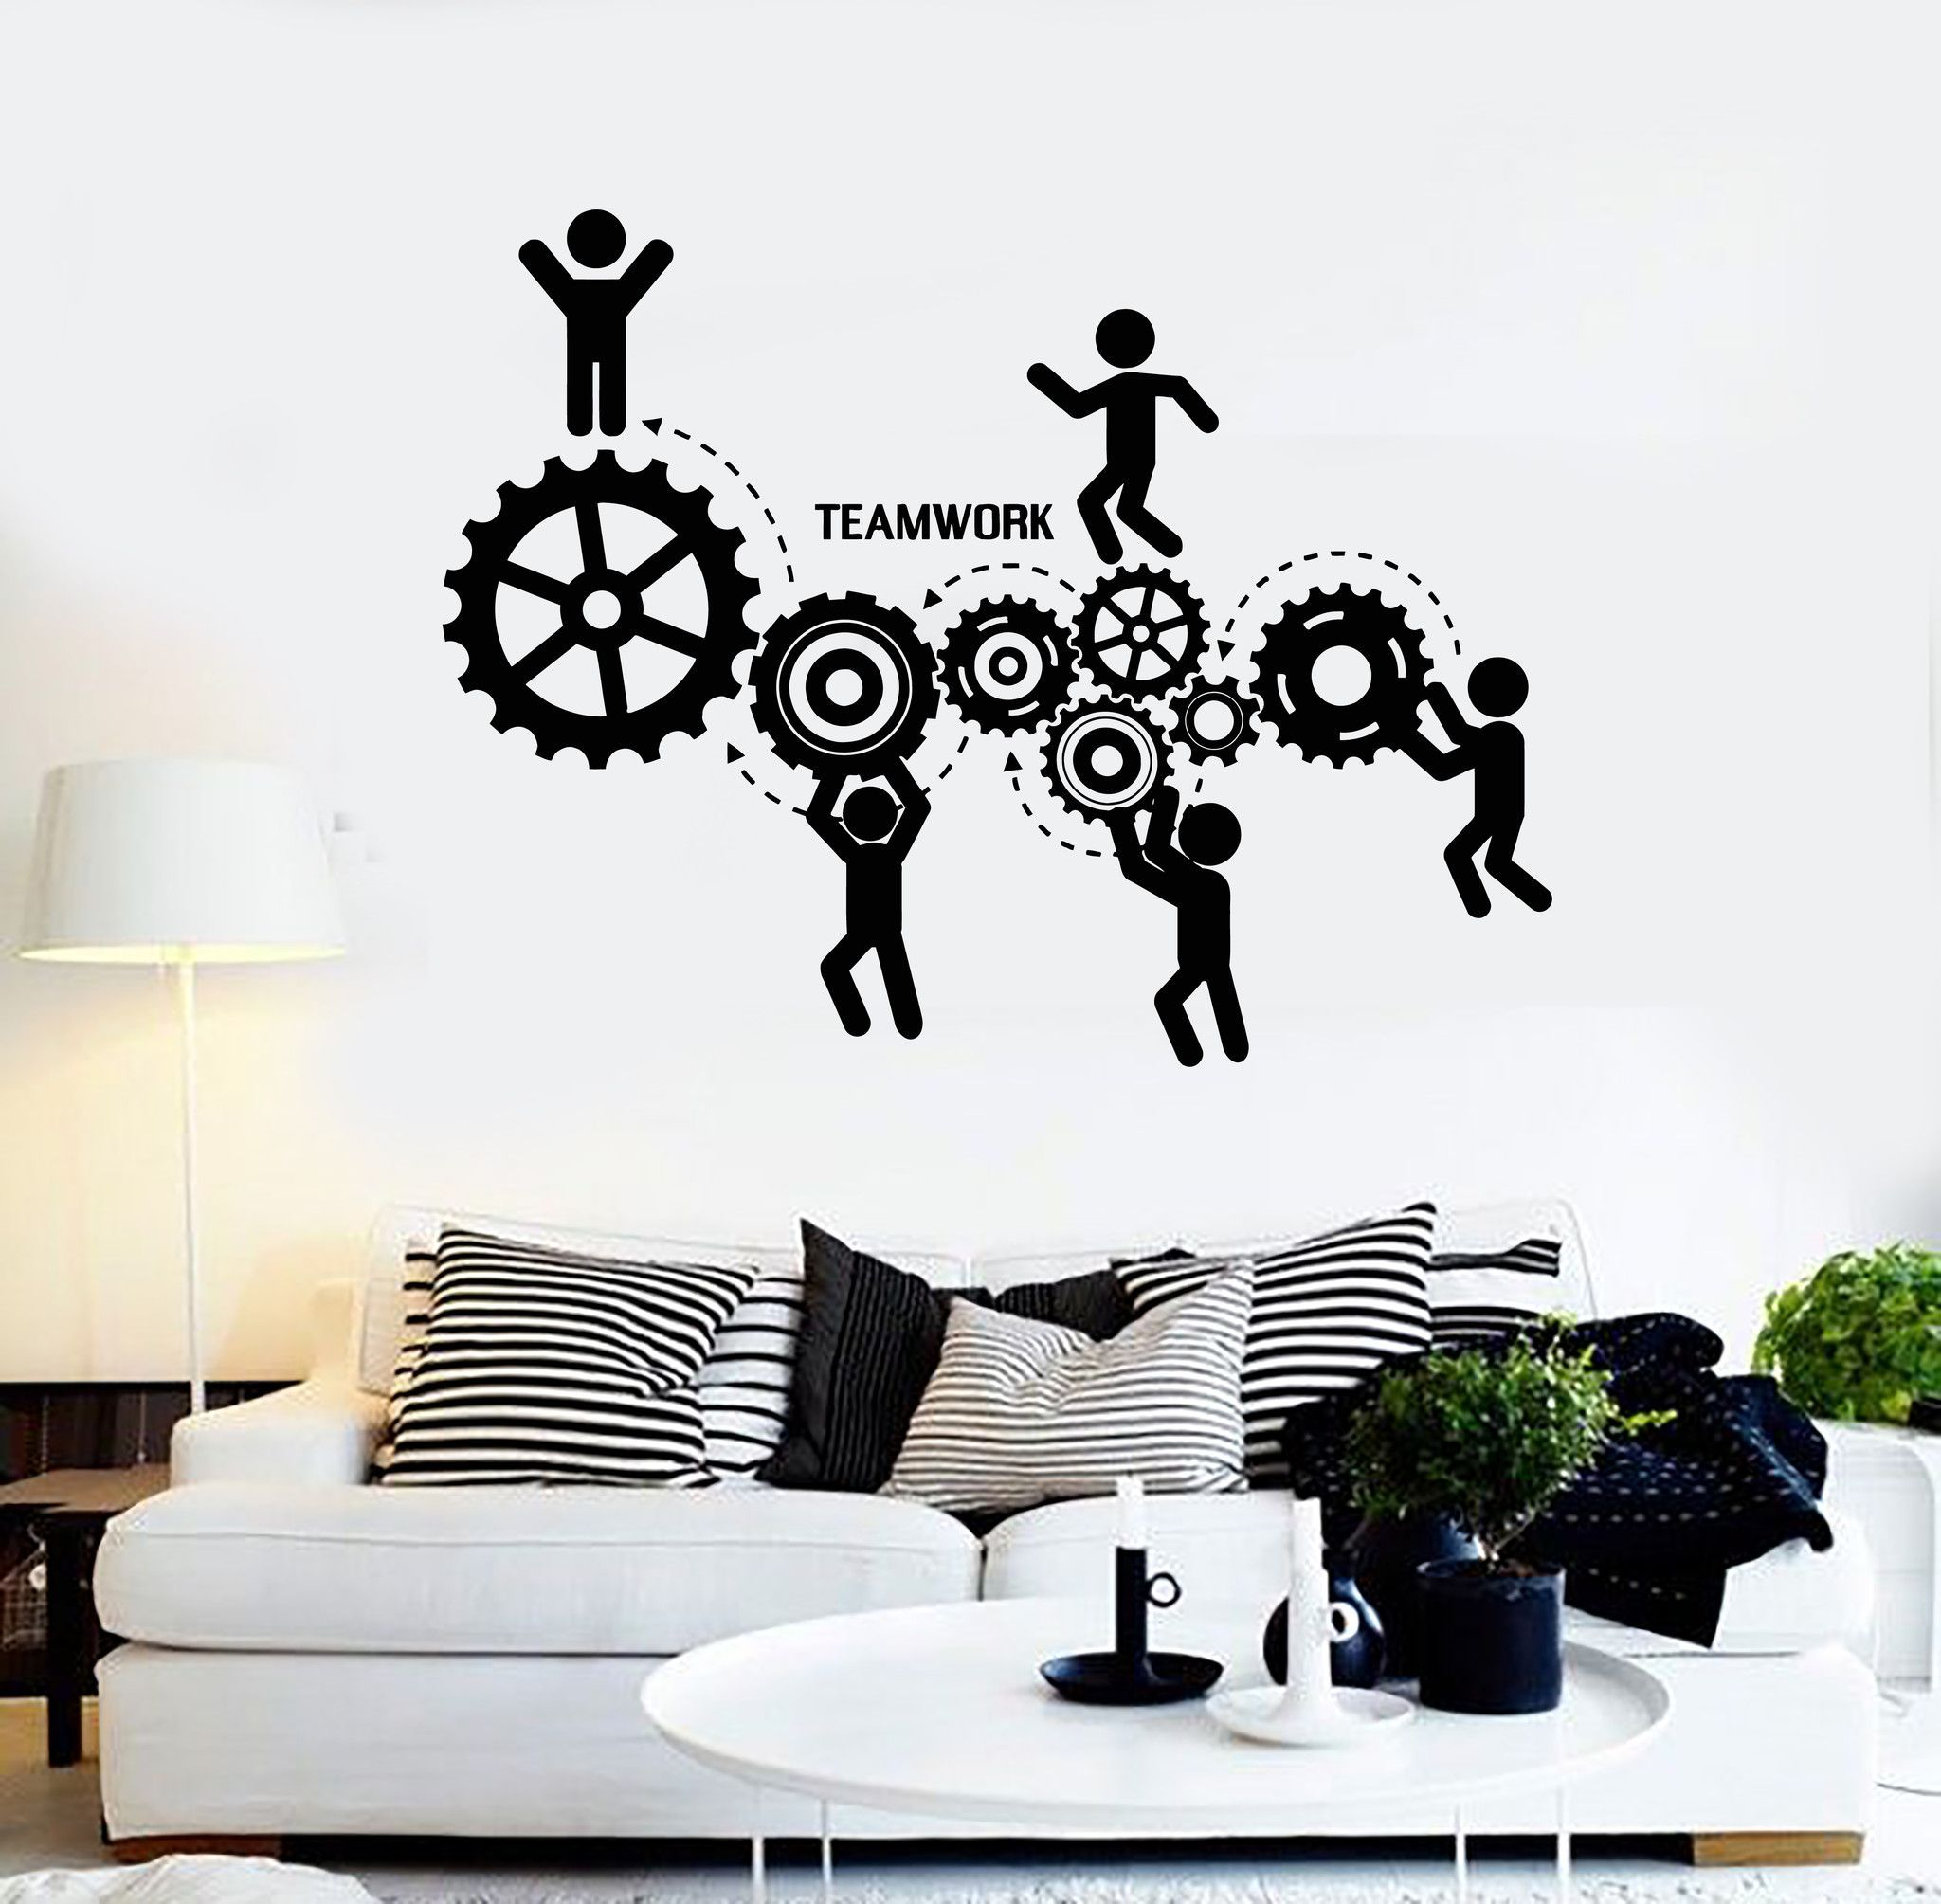 Vinyl wall decal teamwork office motivation worker for Stickers 3d pared